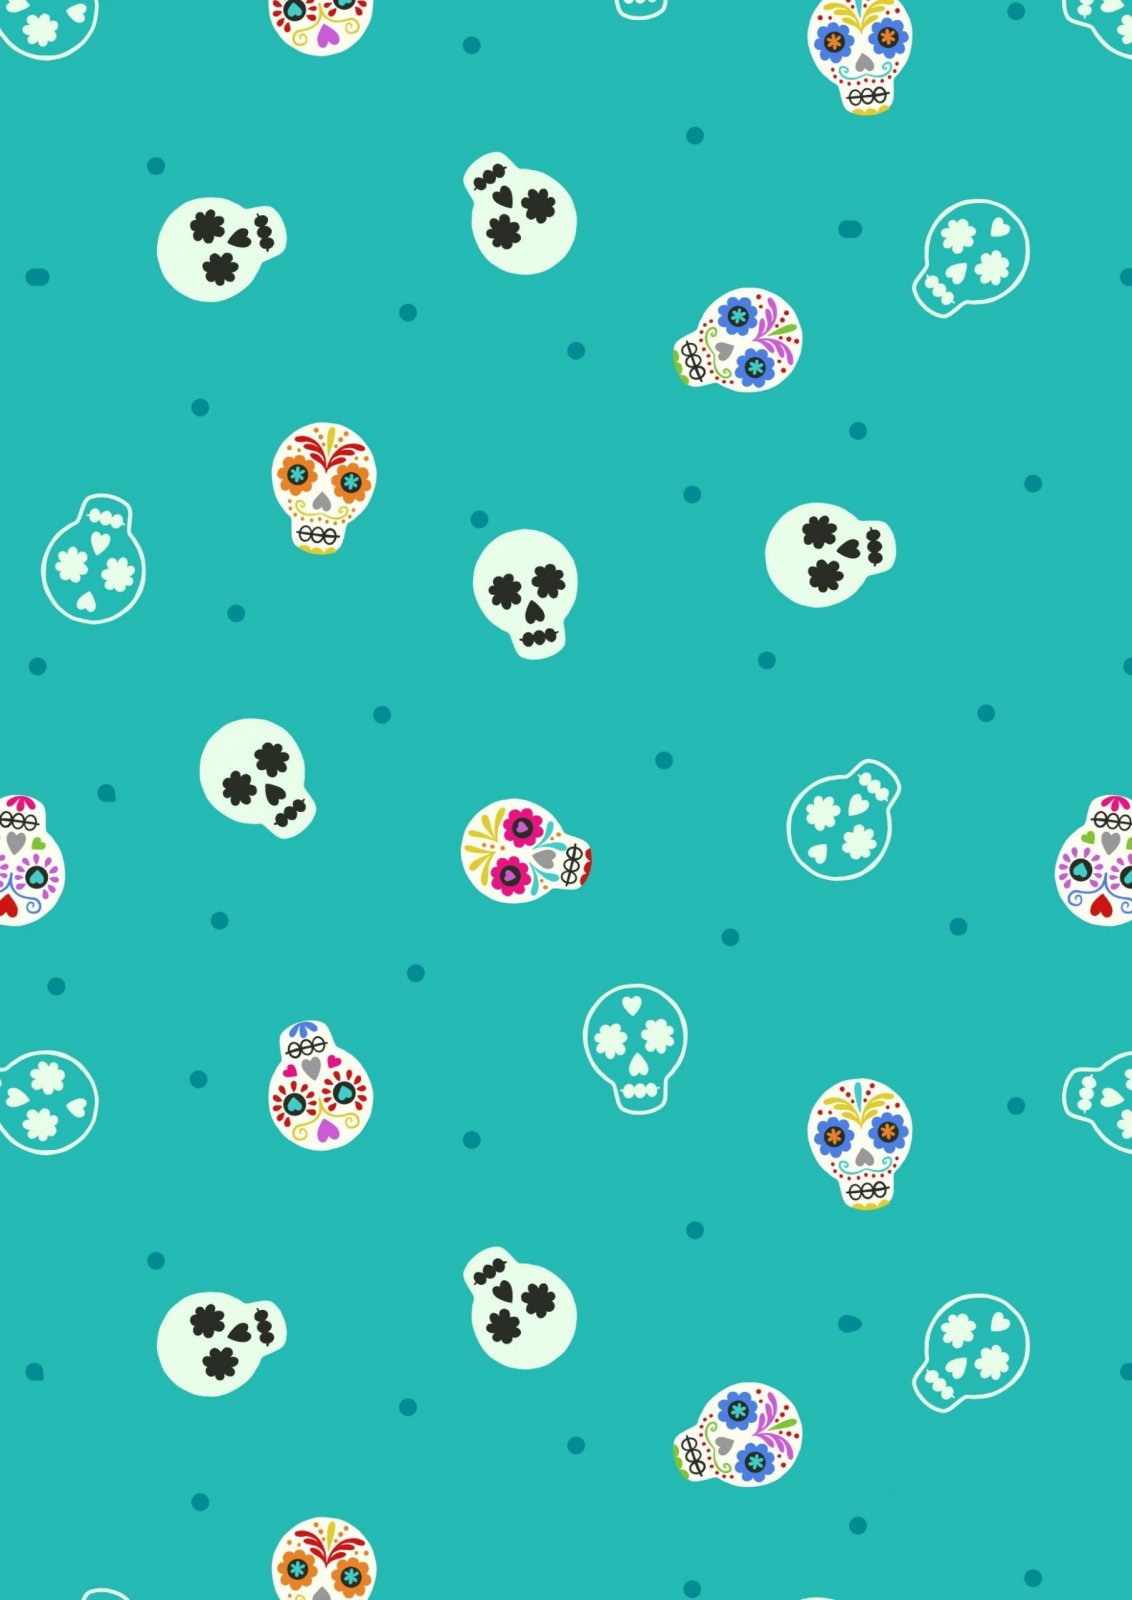 Small Things Glow - Sugar Skulls on Turquoise with Glow in the Dark by Lewis and Irene